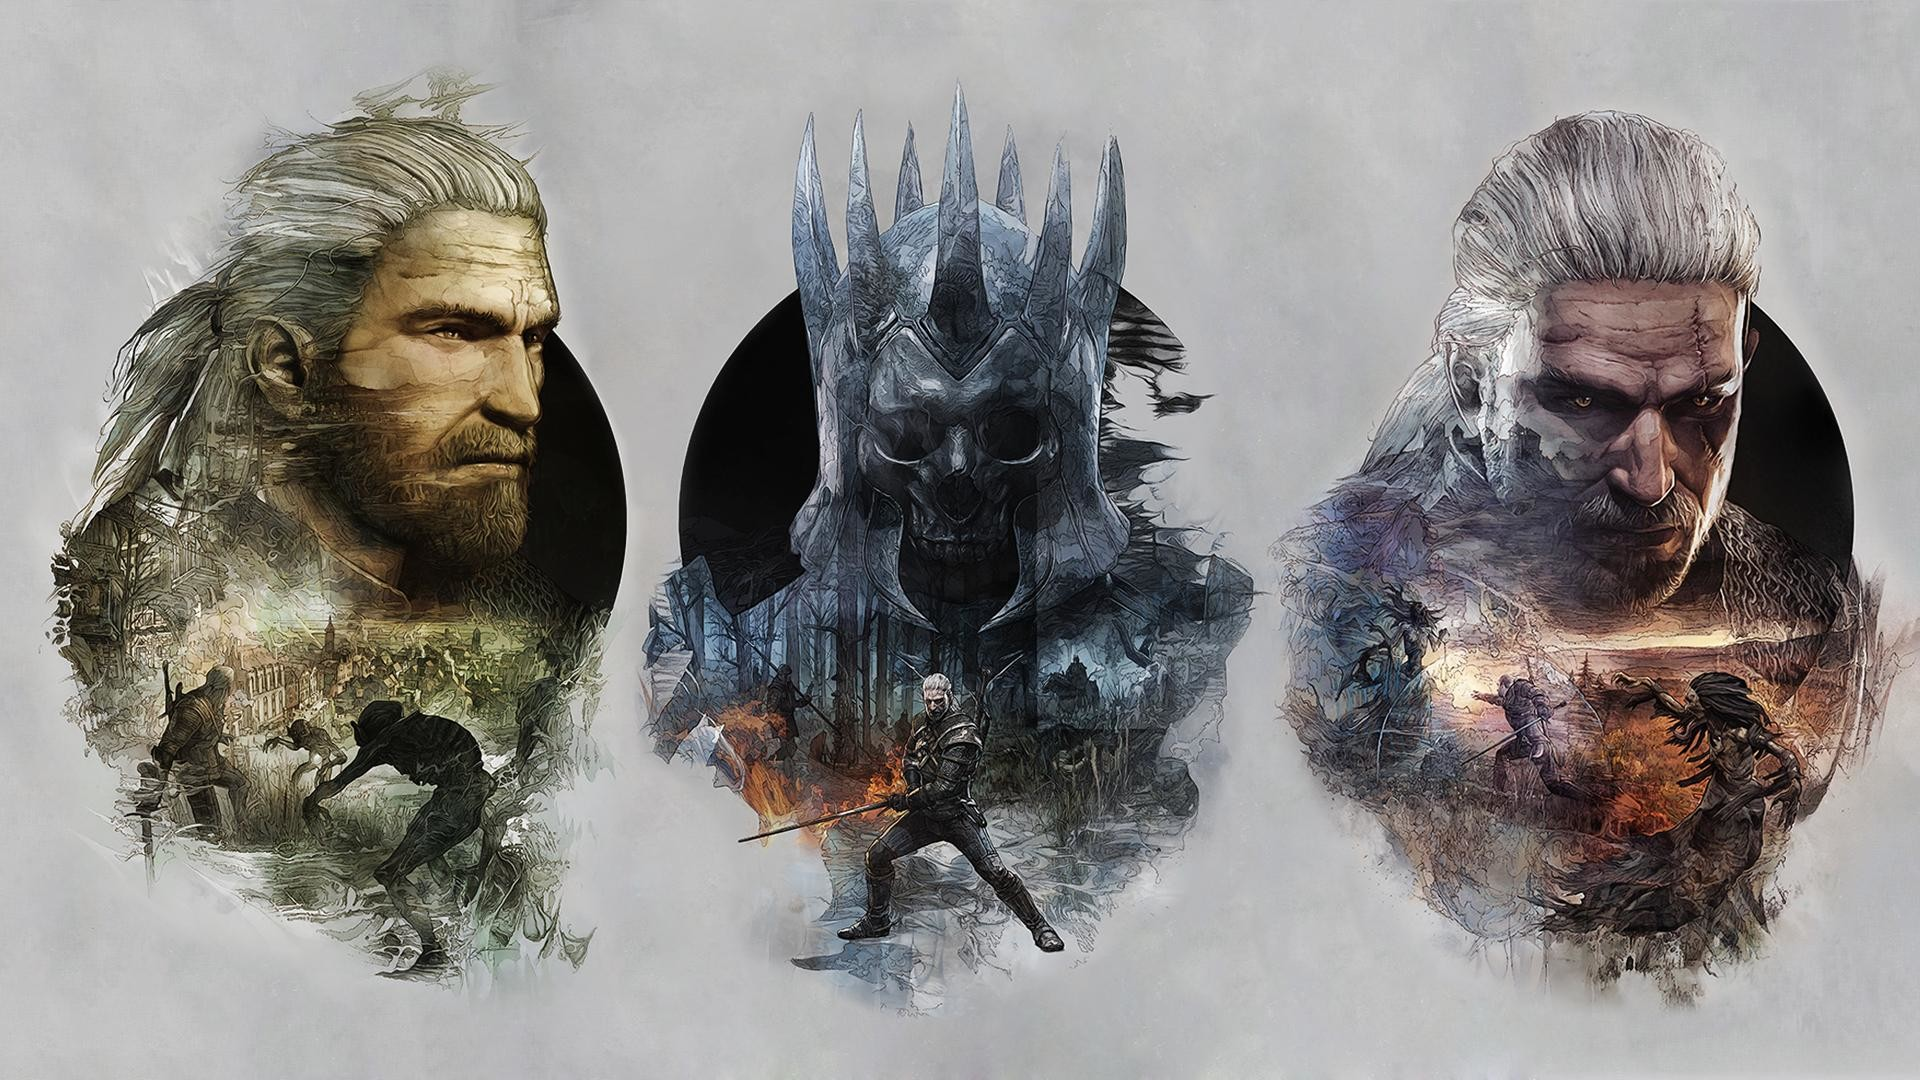 Another Witcher 3 Wallpaper I Made By Combining The Remaining 3 Steelbook  Covers From the Collector's Edition [1920×1080] …